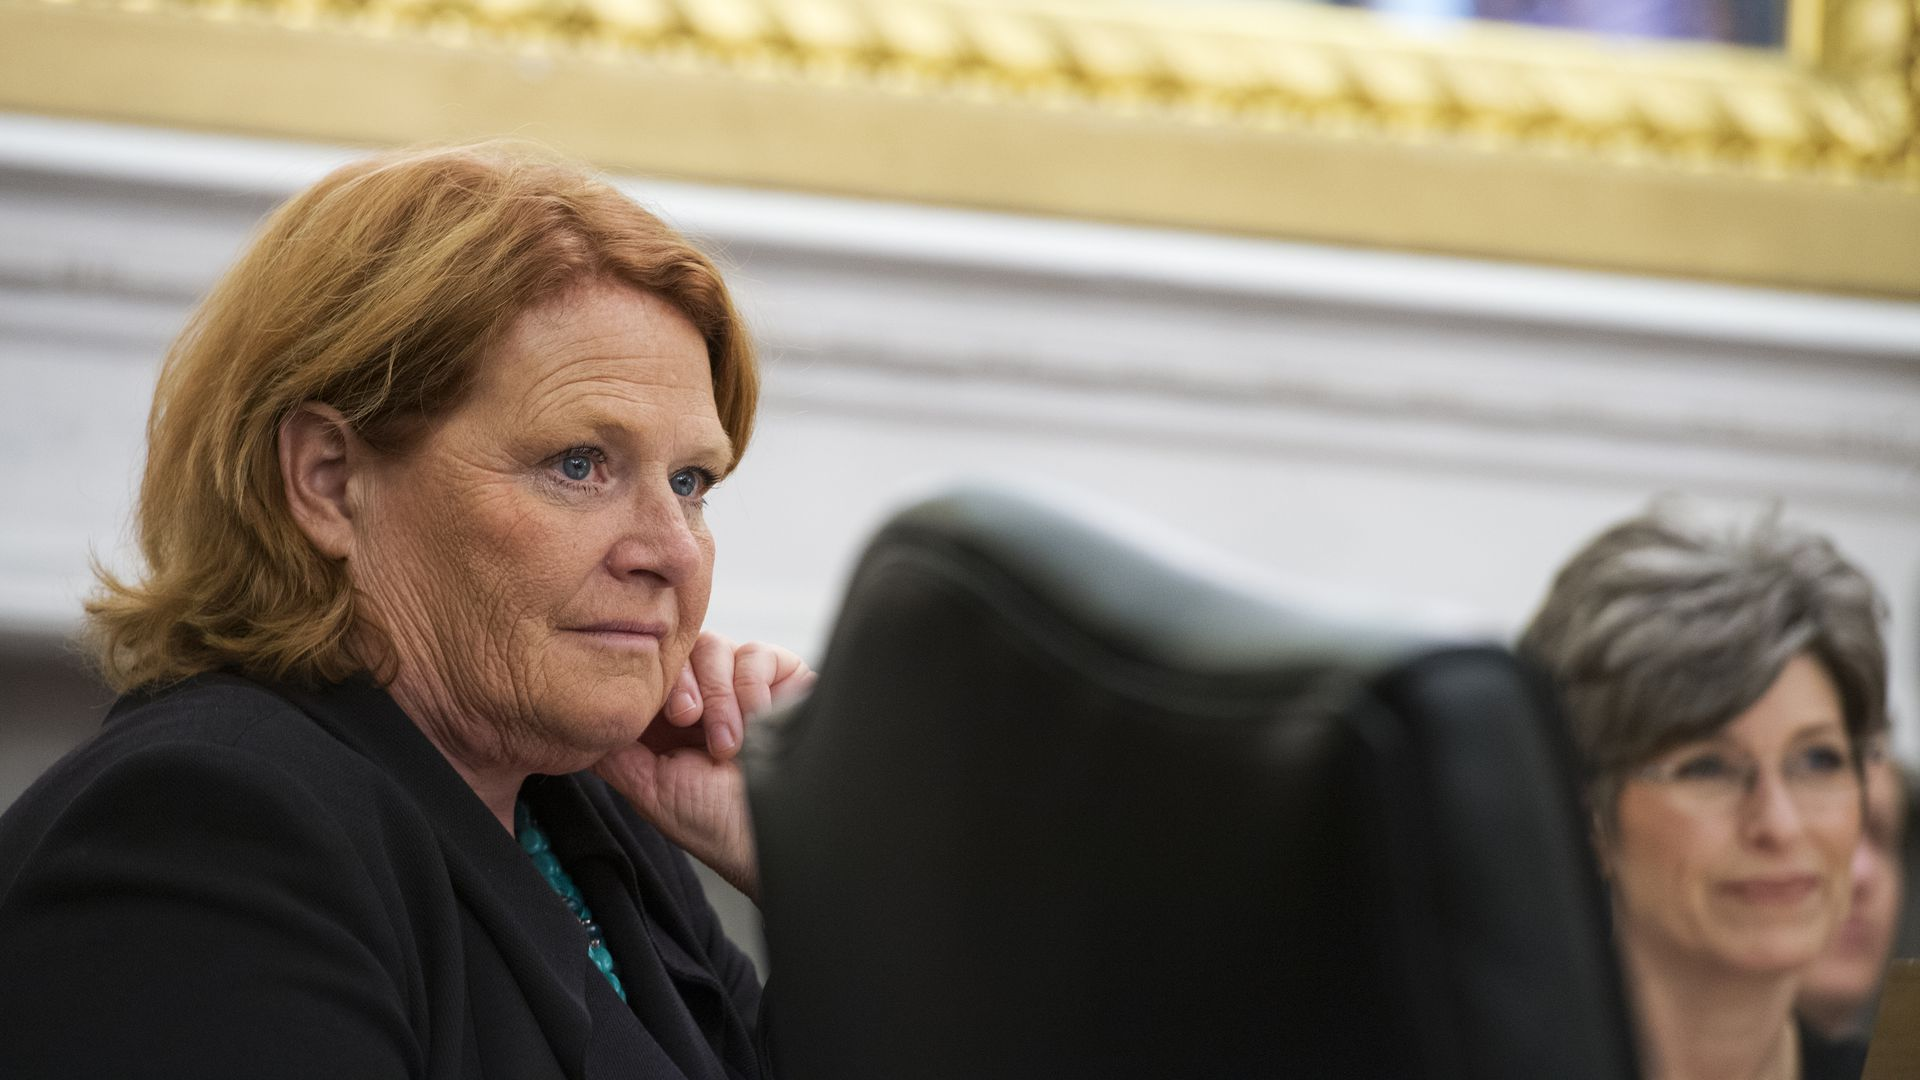 Heidi Heitkamp looking at someone with her hand on her cheek